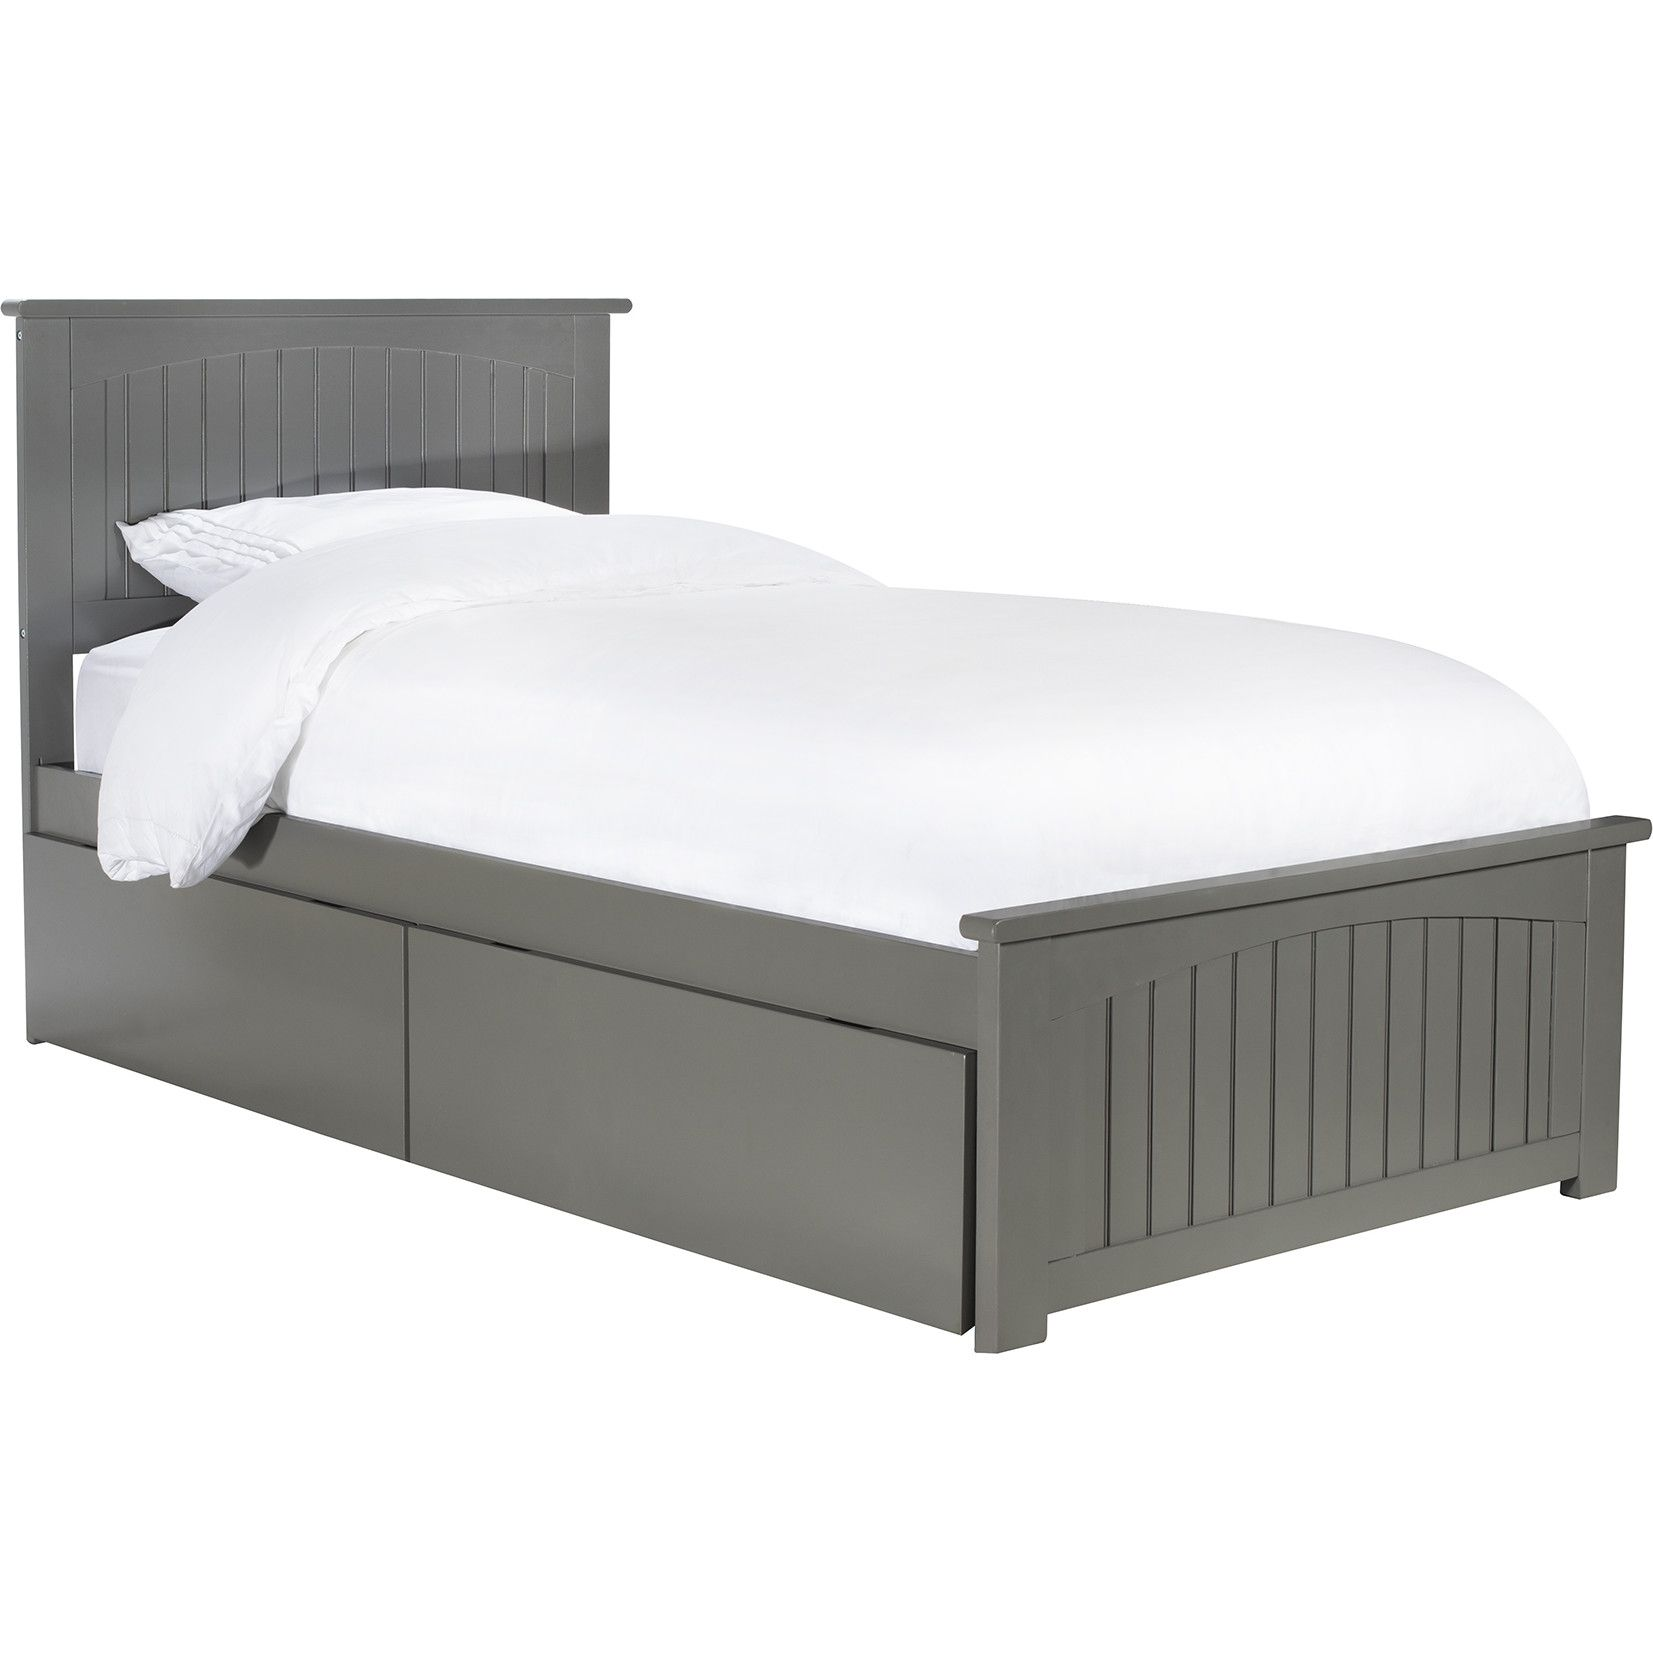 Atlantic Nantucket Twin Xl Platform Bed Matching Footboard 2